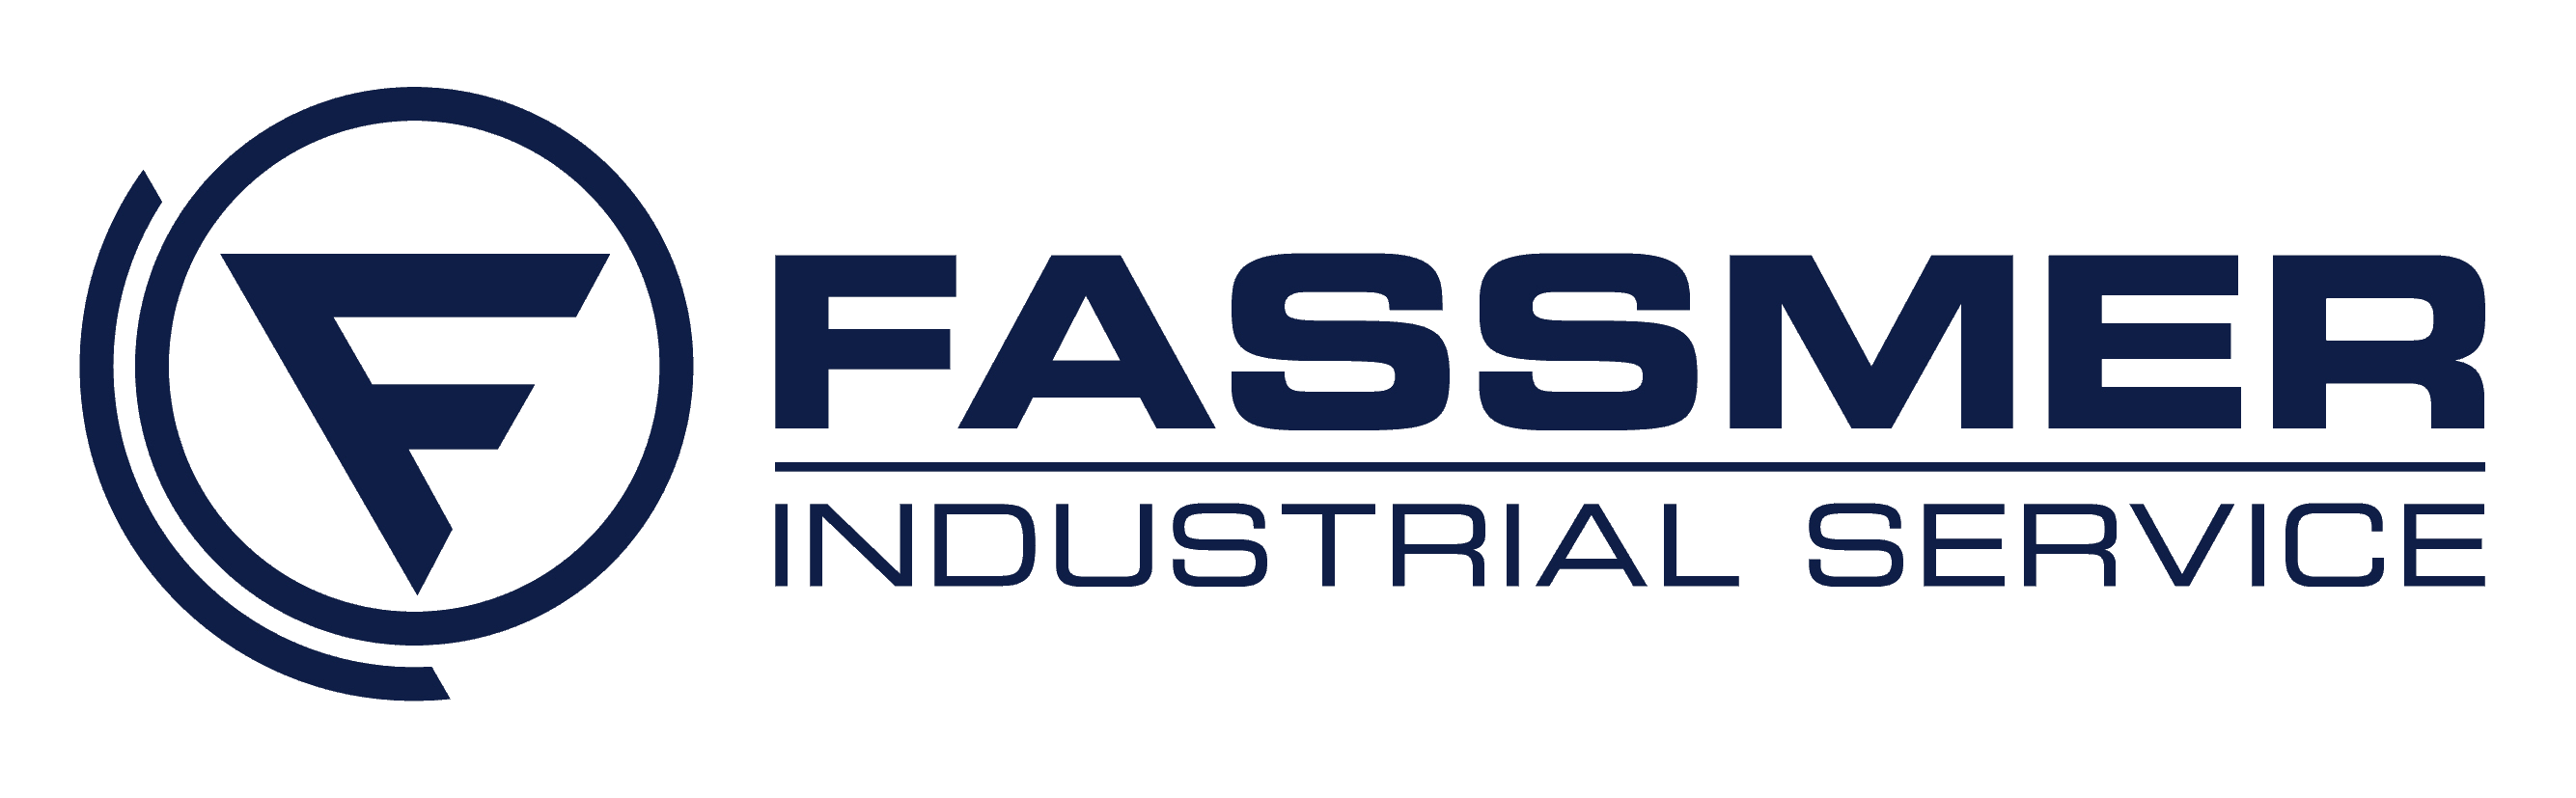 Fassmer Industrial Service GmbH & Co. KG